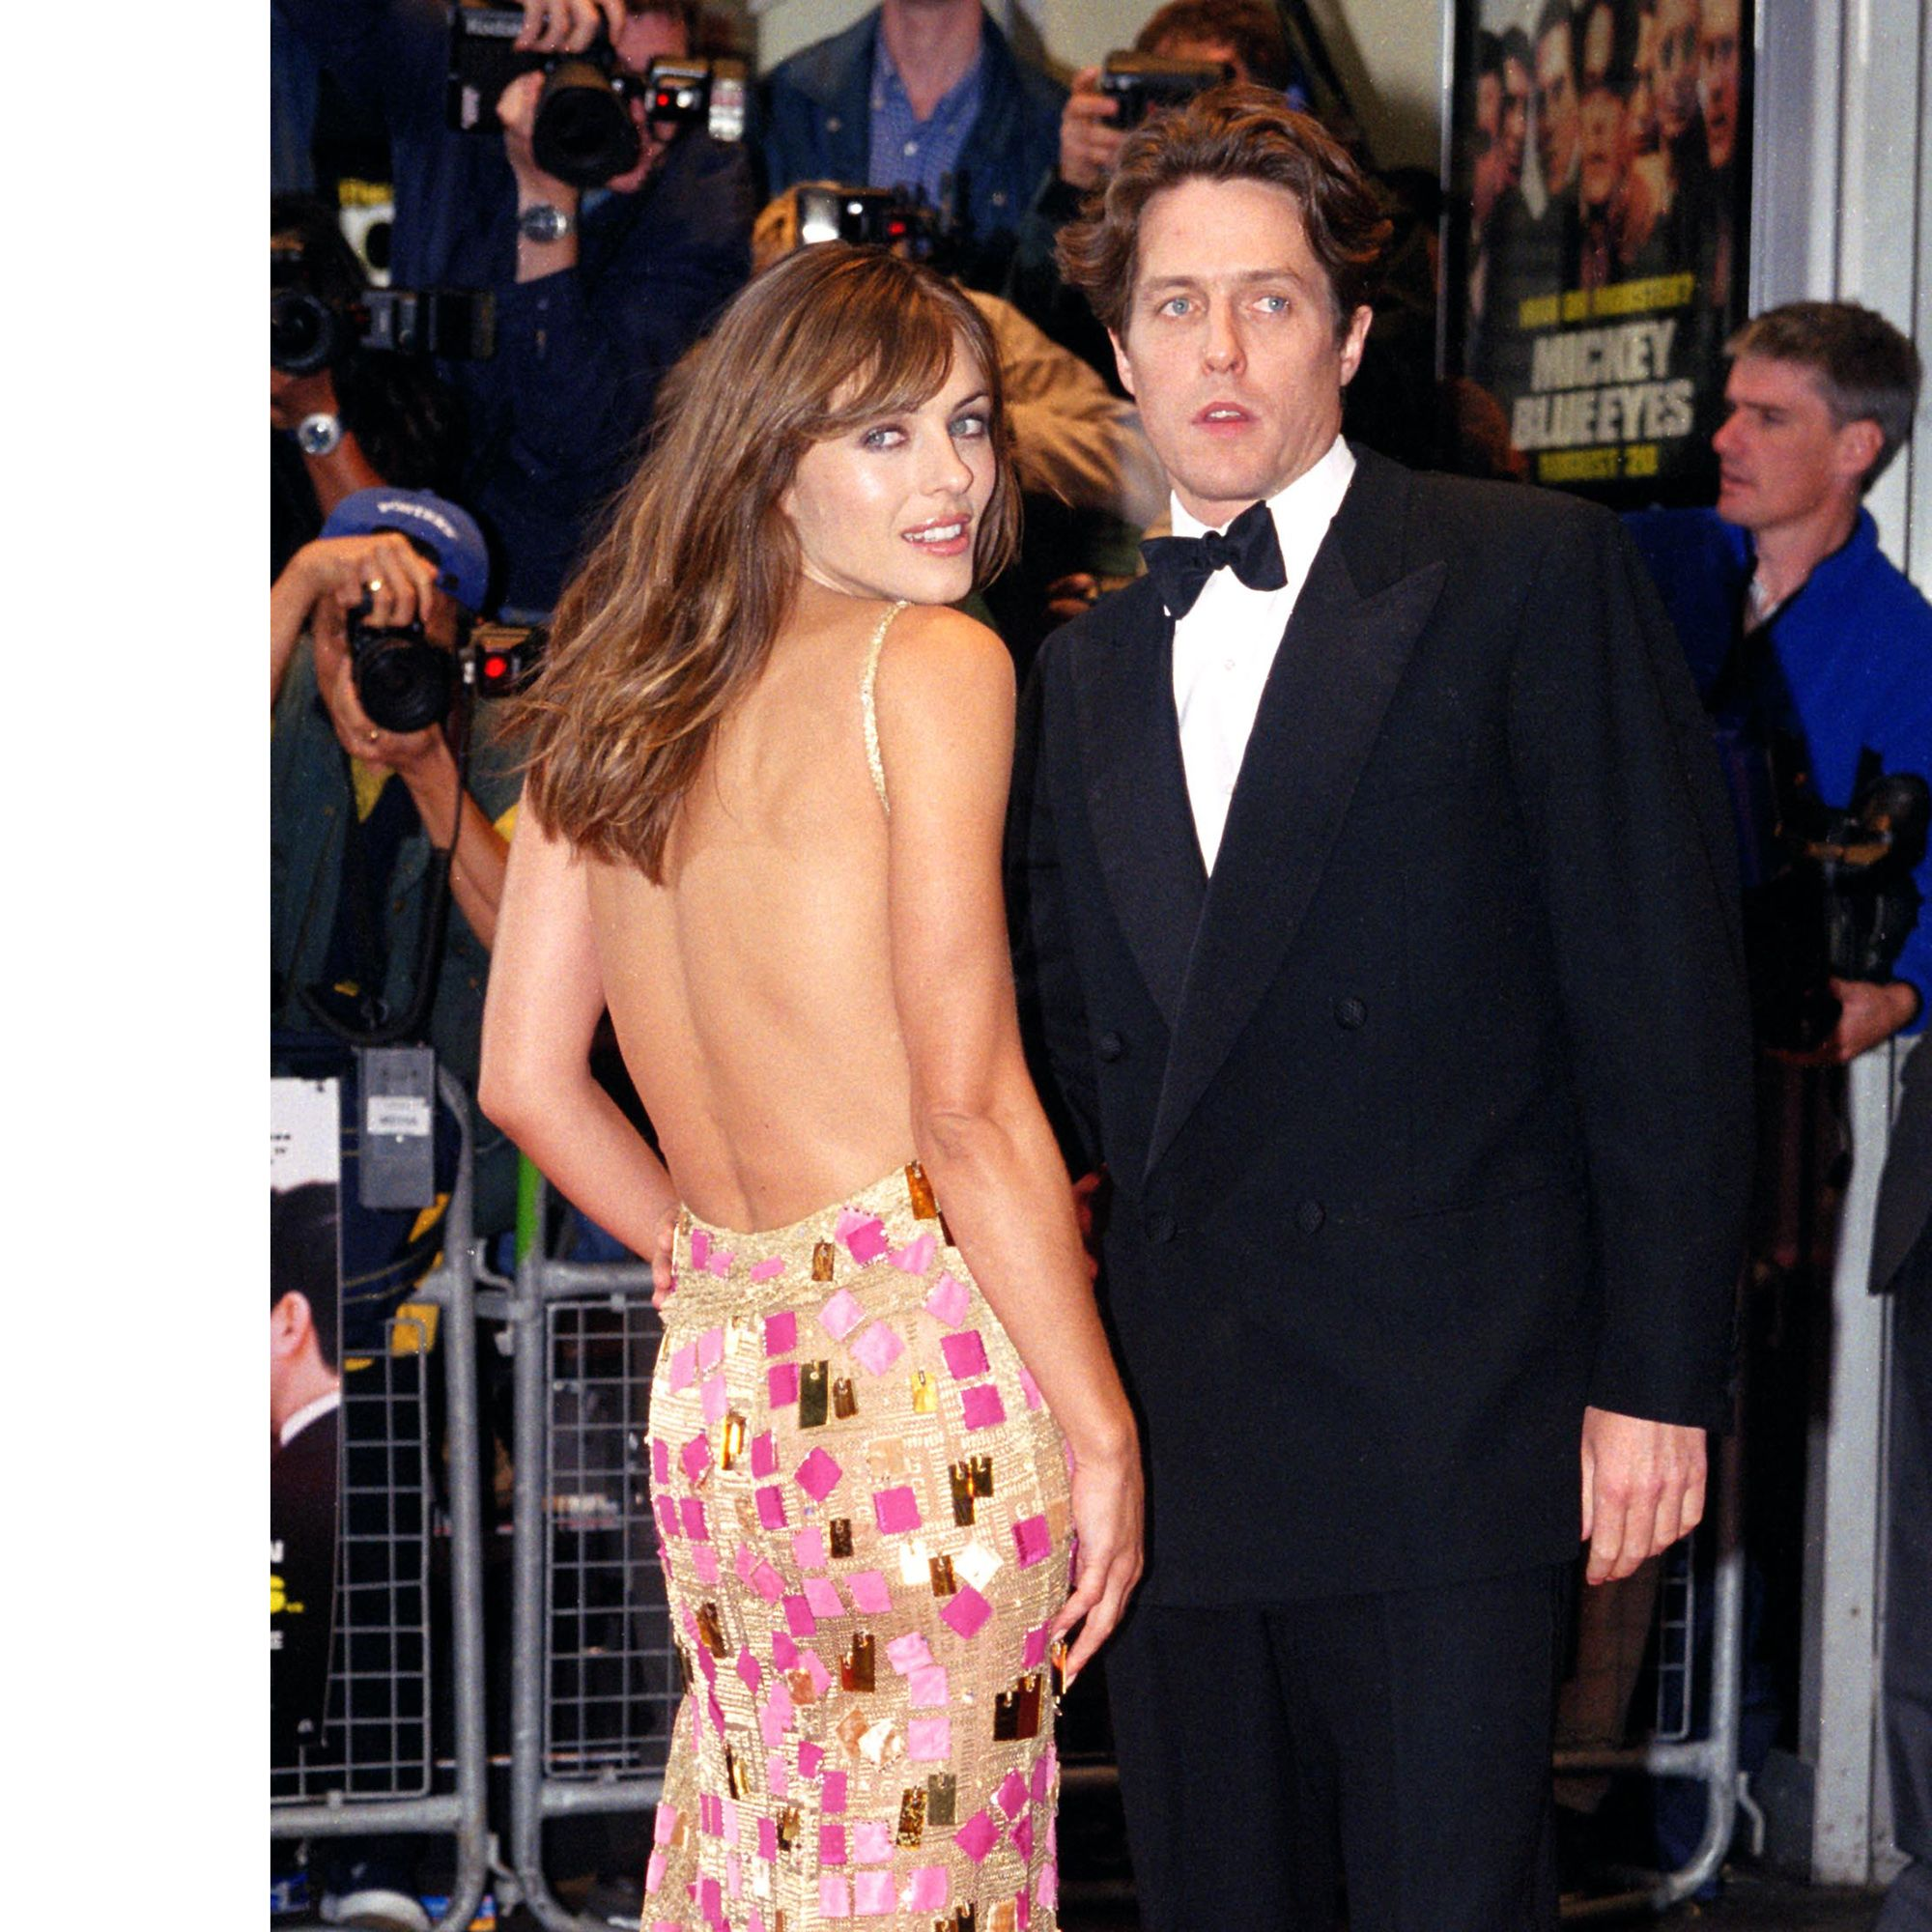 Hugh Grant &amp&#x3B; Elizabeth Hurley Attend The World Charity Premiere Of 'Mickey Blue Eyes' In London. (Photo by Justin Goff\UK Press via Getty Images)